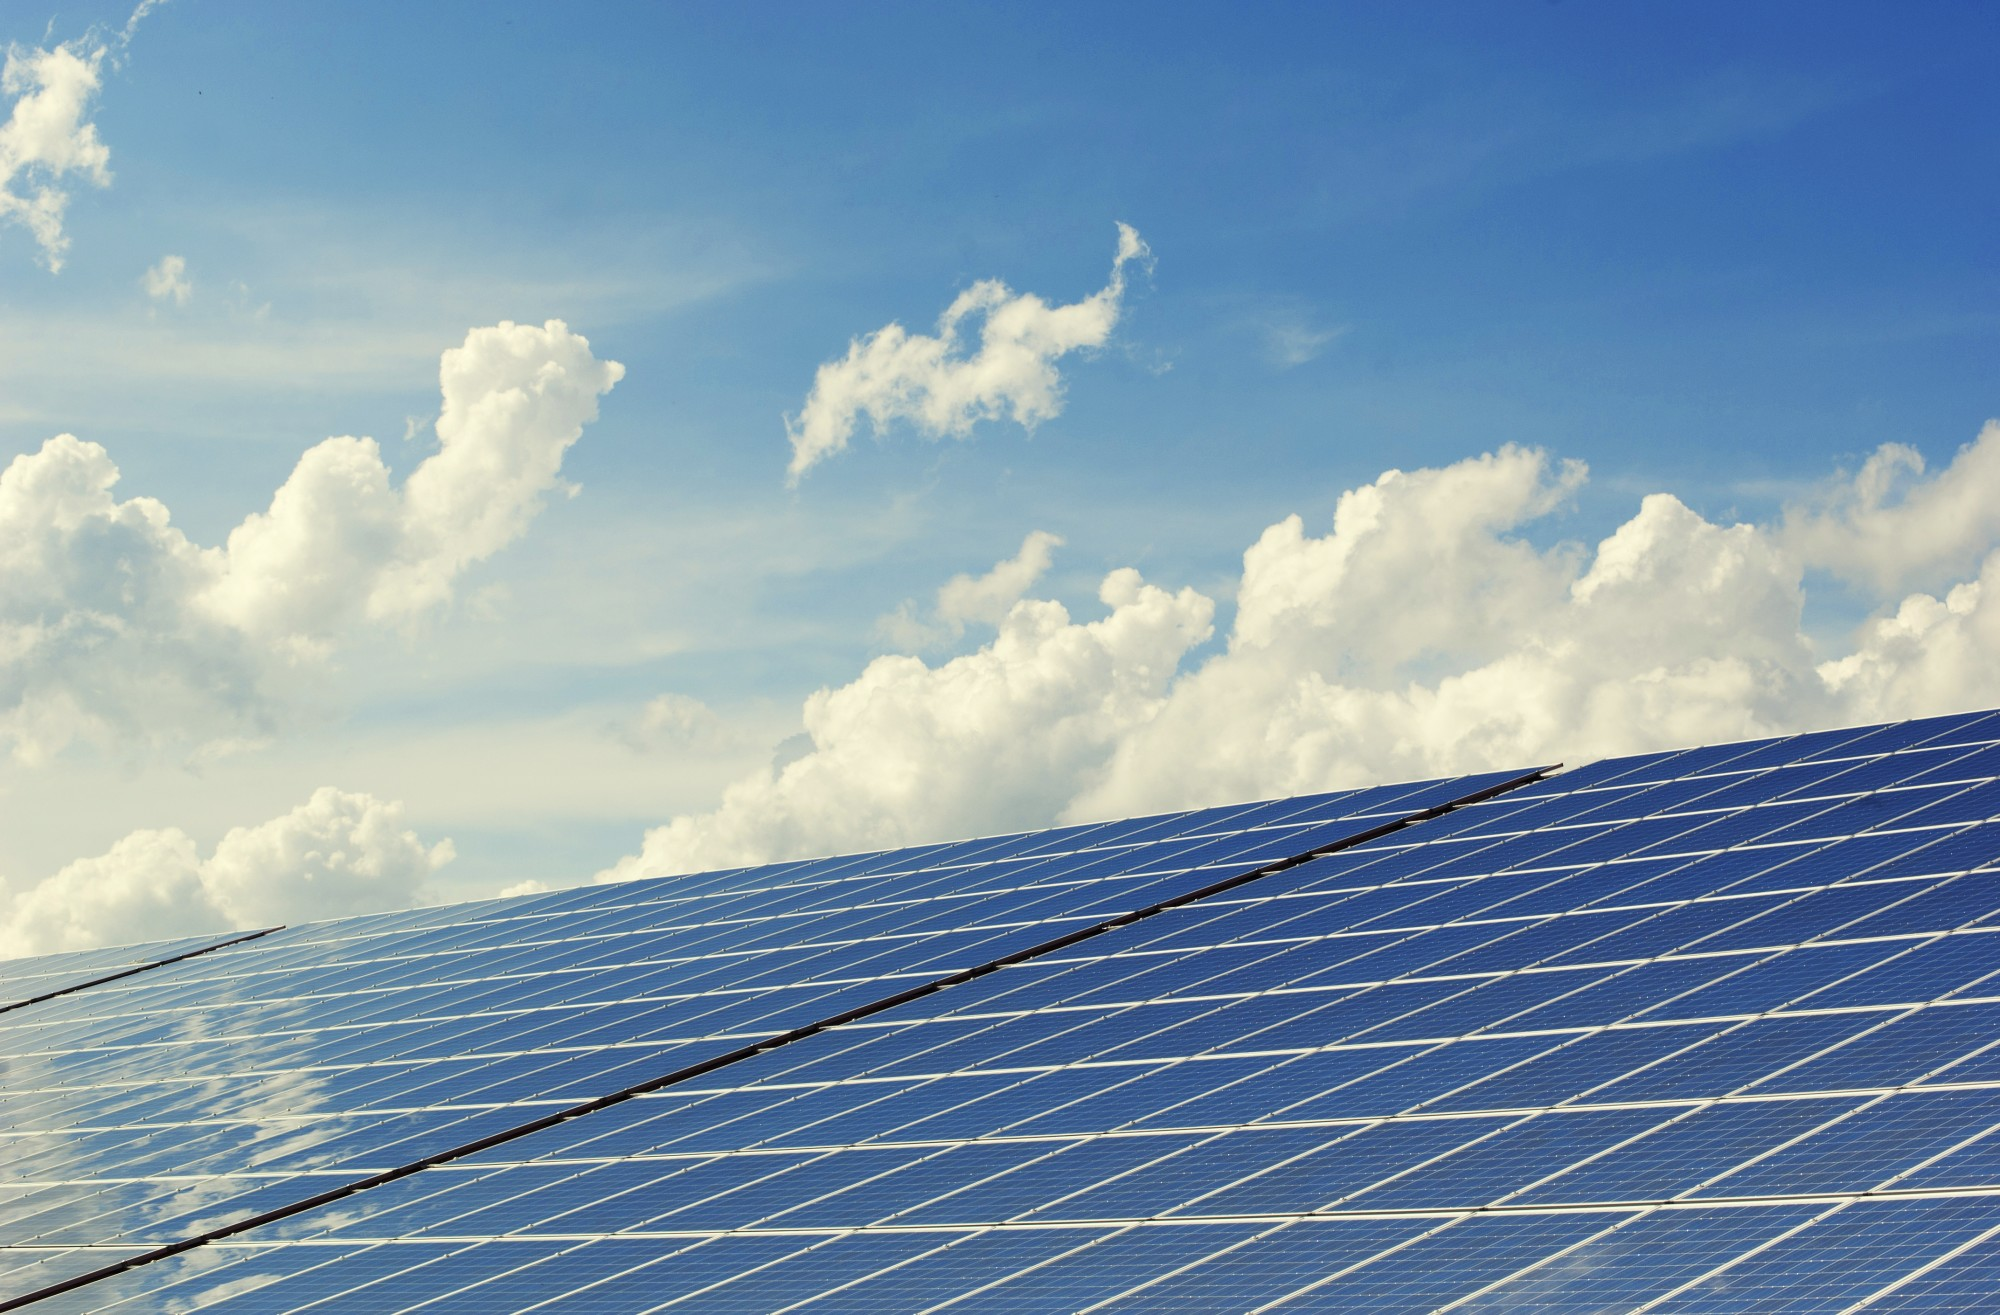 What to Look for When Choosing a Solar Company